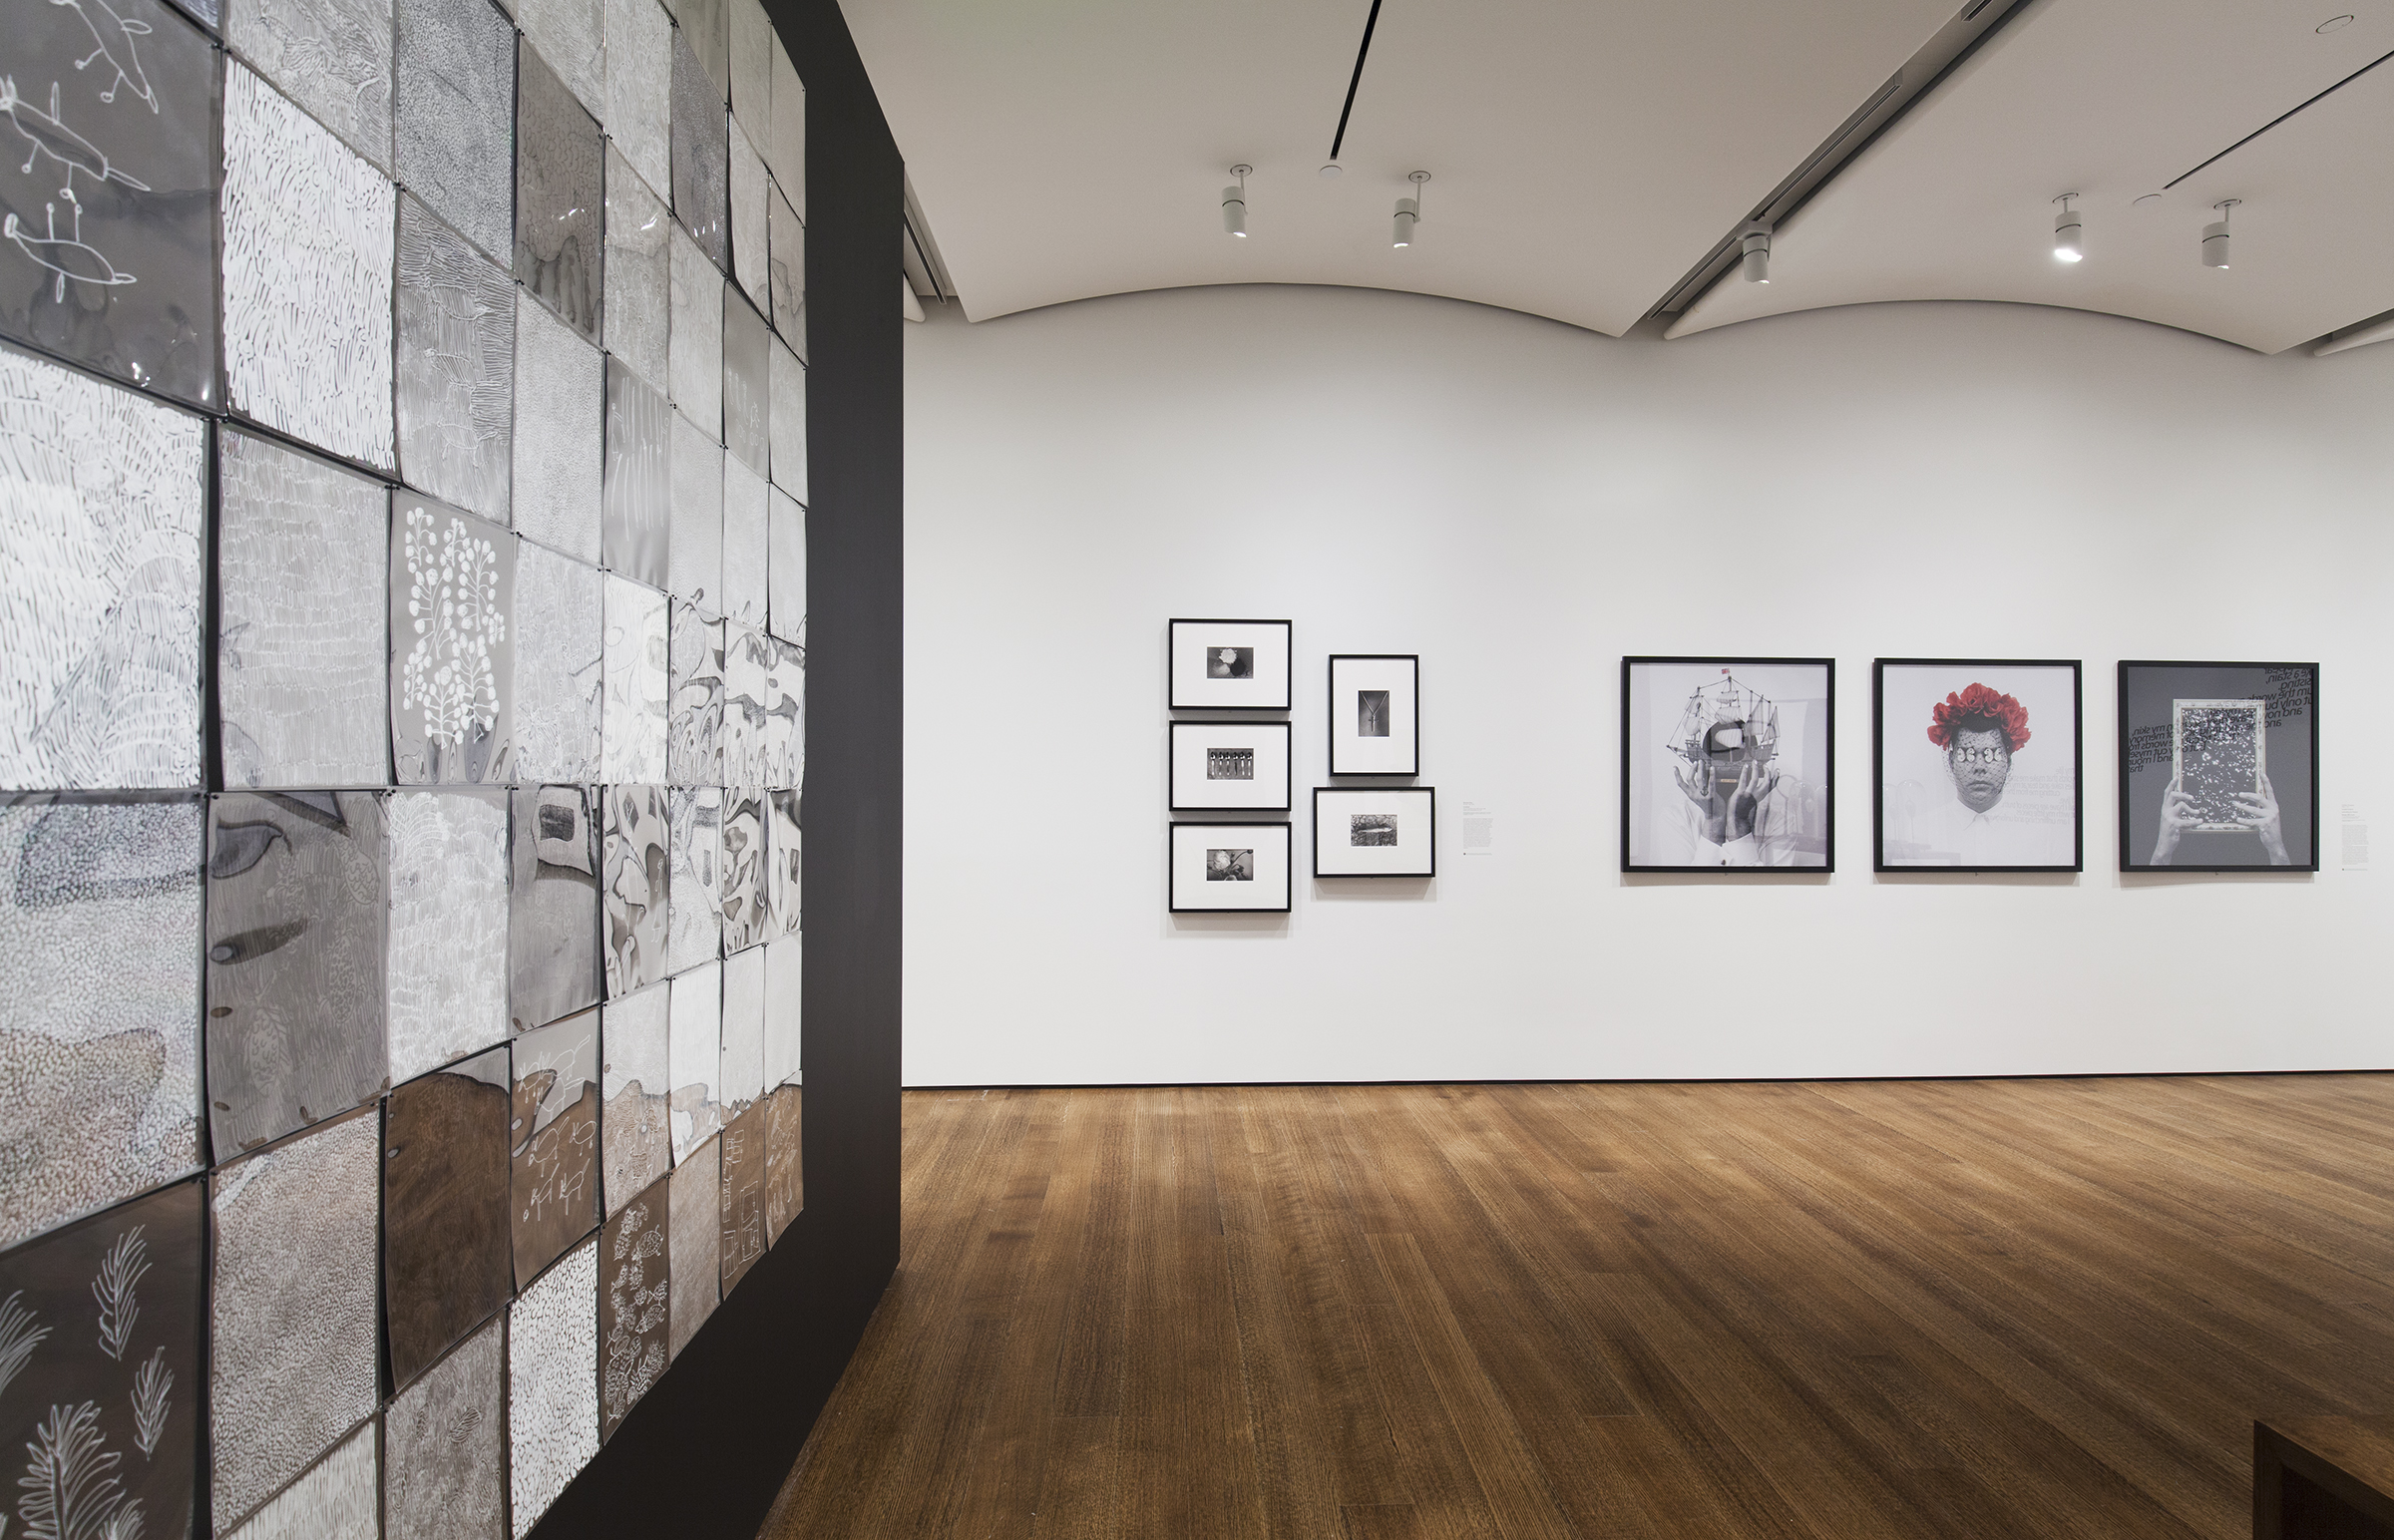 Exhibition gallery with a grouping of photographs on the back wall. On the left, is a black wall with a series of square black and white prints installed.